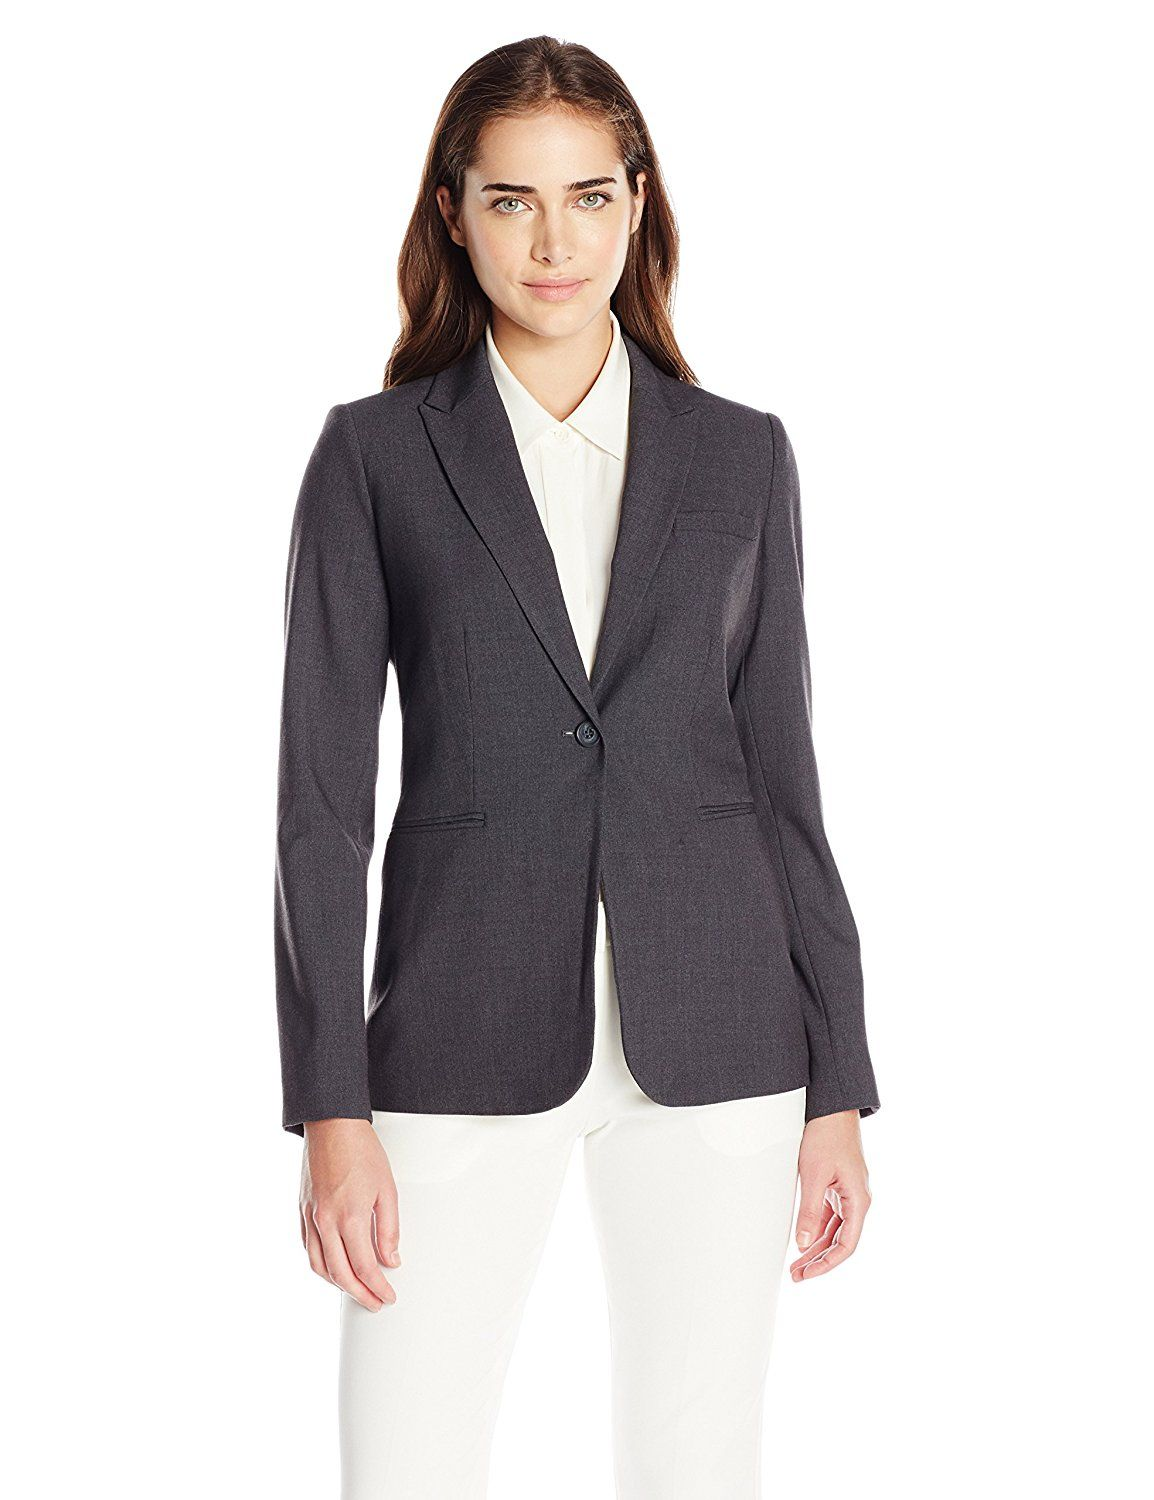 fe80a2ba894a Calvin Klein Women s Single-Button Suit Jacket     This is an Amazon  Affiliate link. Check out the image by visiting the link.